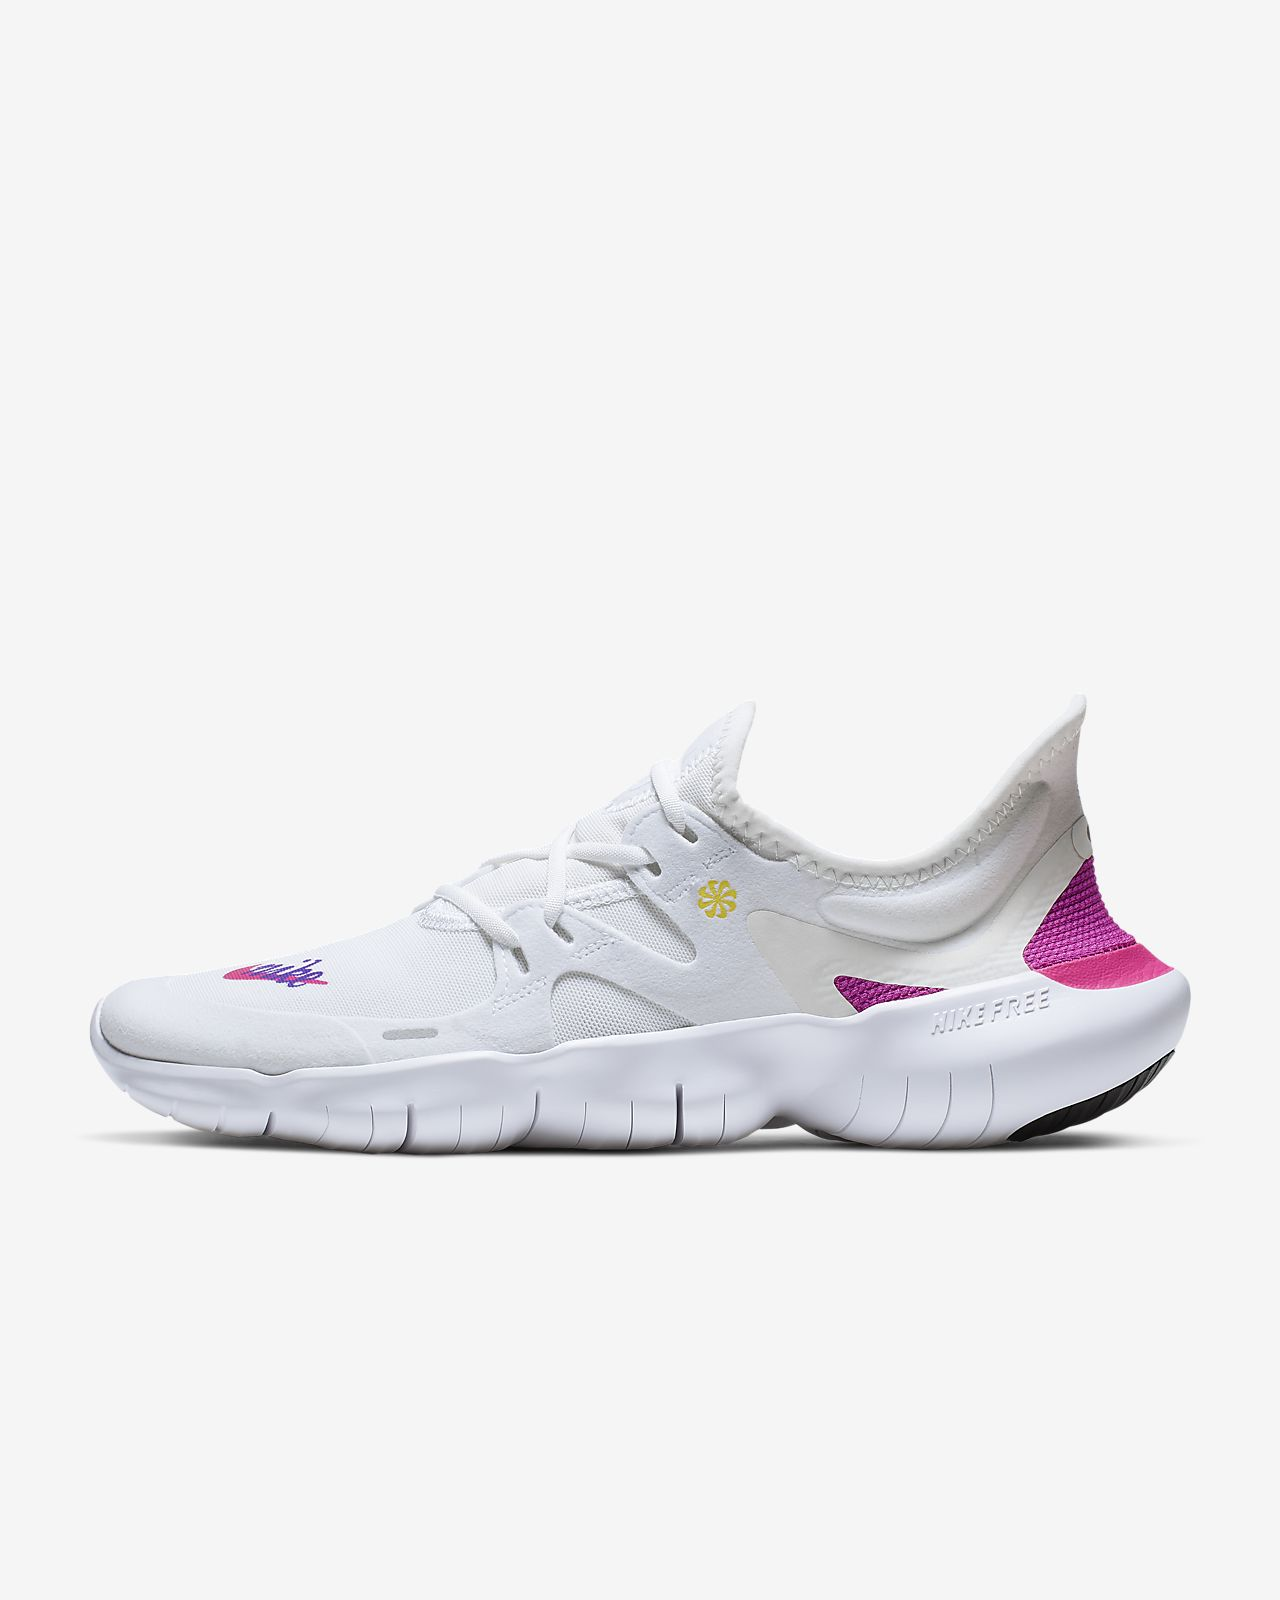 new arrival 55596 139d9 Nike Free RN 5.0 Women's Running Shoe